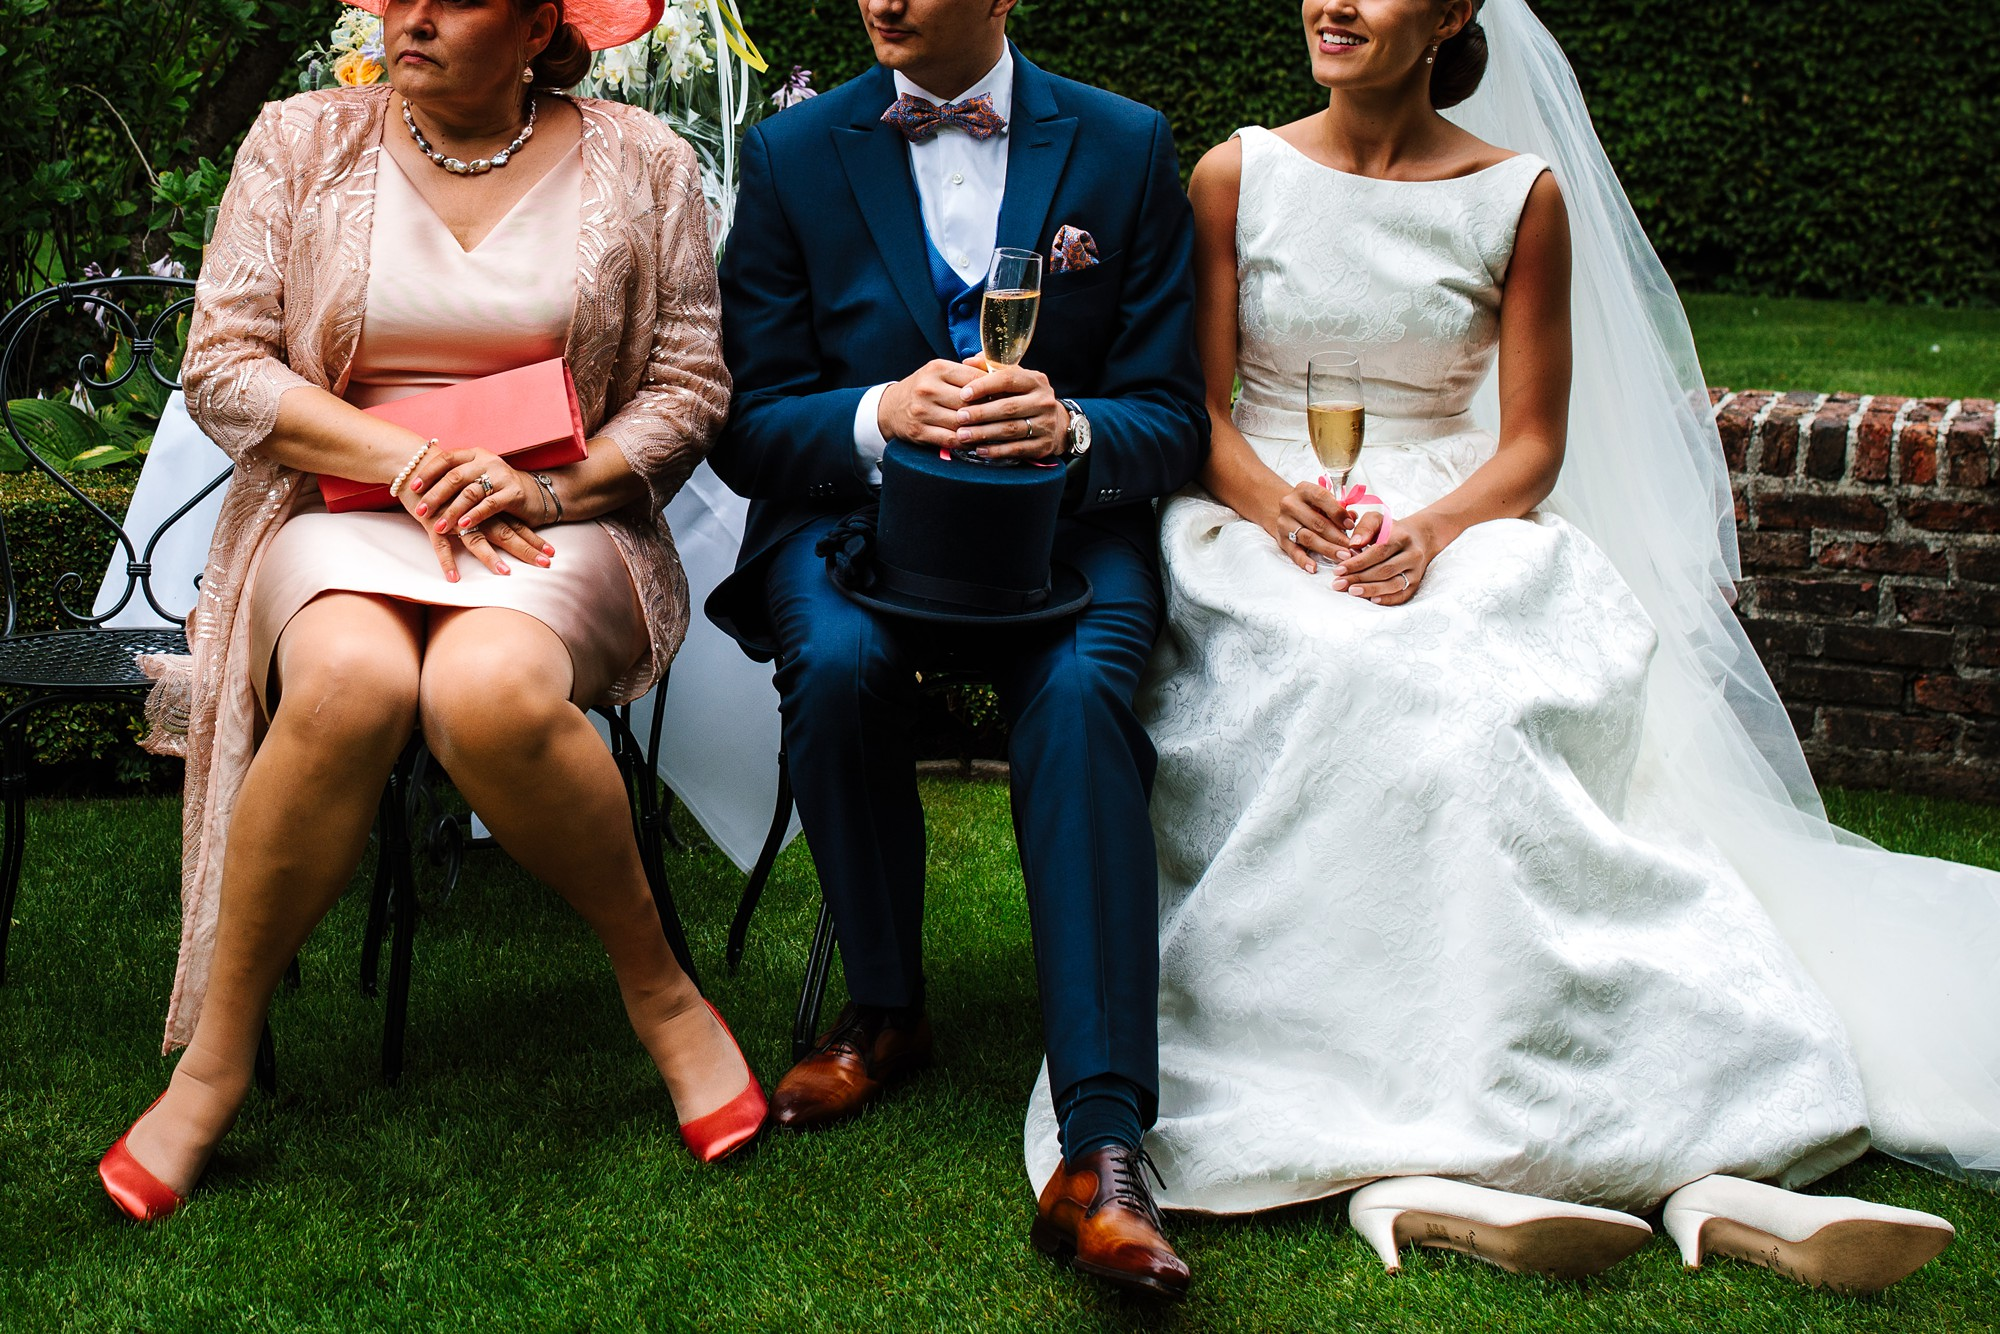 Group portrait focused on the feet of bride, groom and mom by Yves Schepers - Belgium wedding photographer